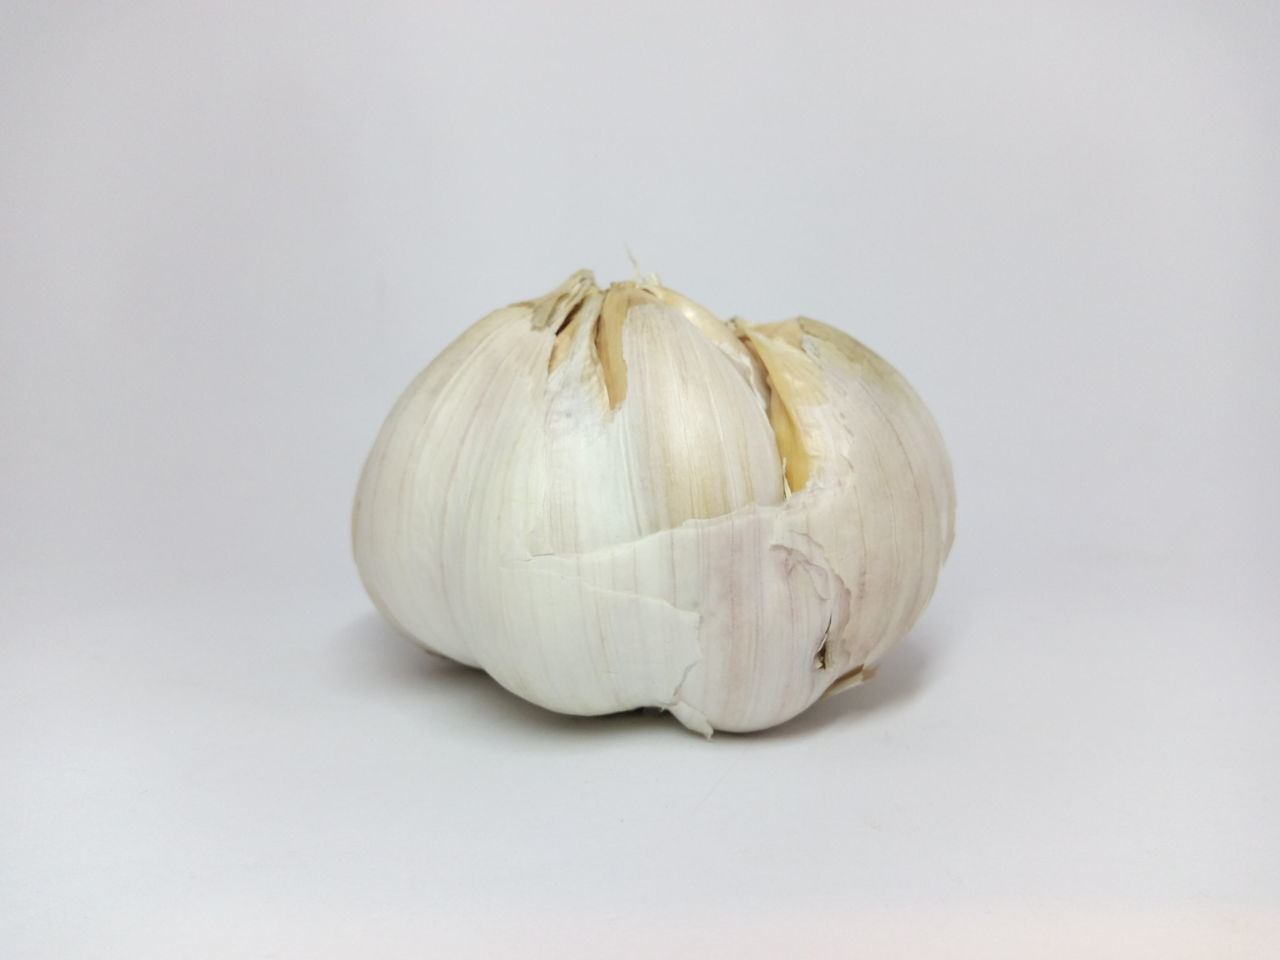 Freshness White Background Food And Drink Healthy Eating Food Studio Shot Single Object Vegetable Close-up Garlic Clove No People Whole Garlic Bulb